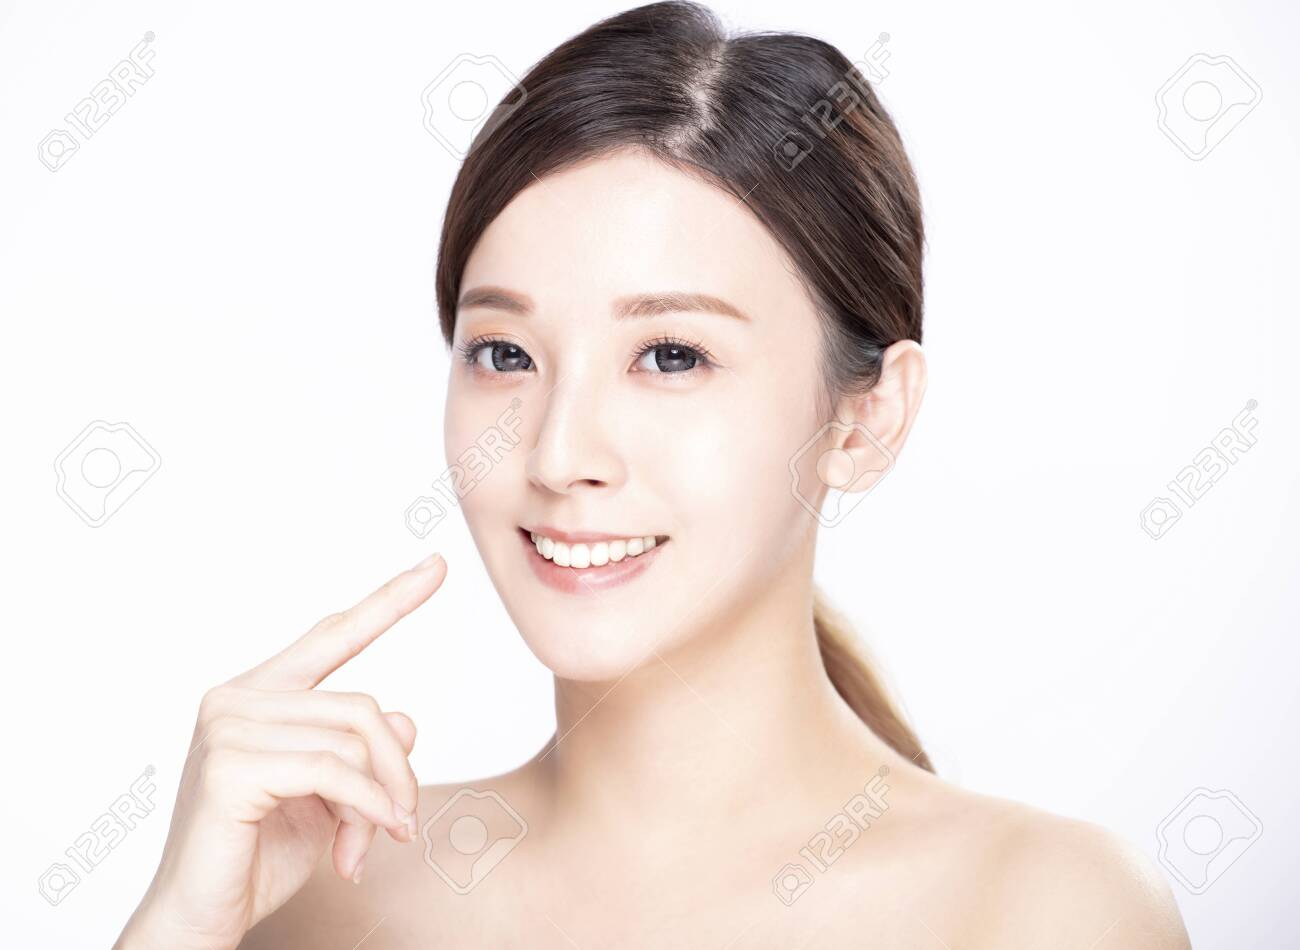 closeup young beauty face and showing her teeth - 137654198